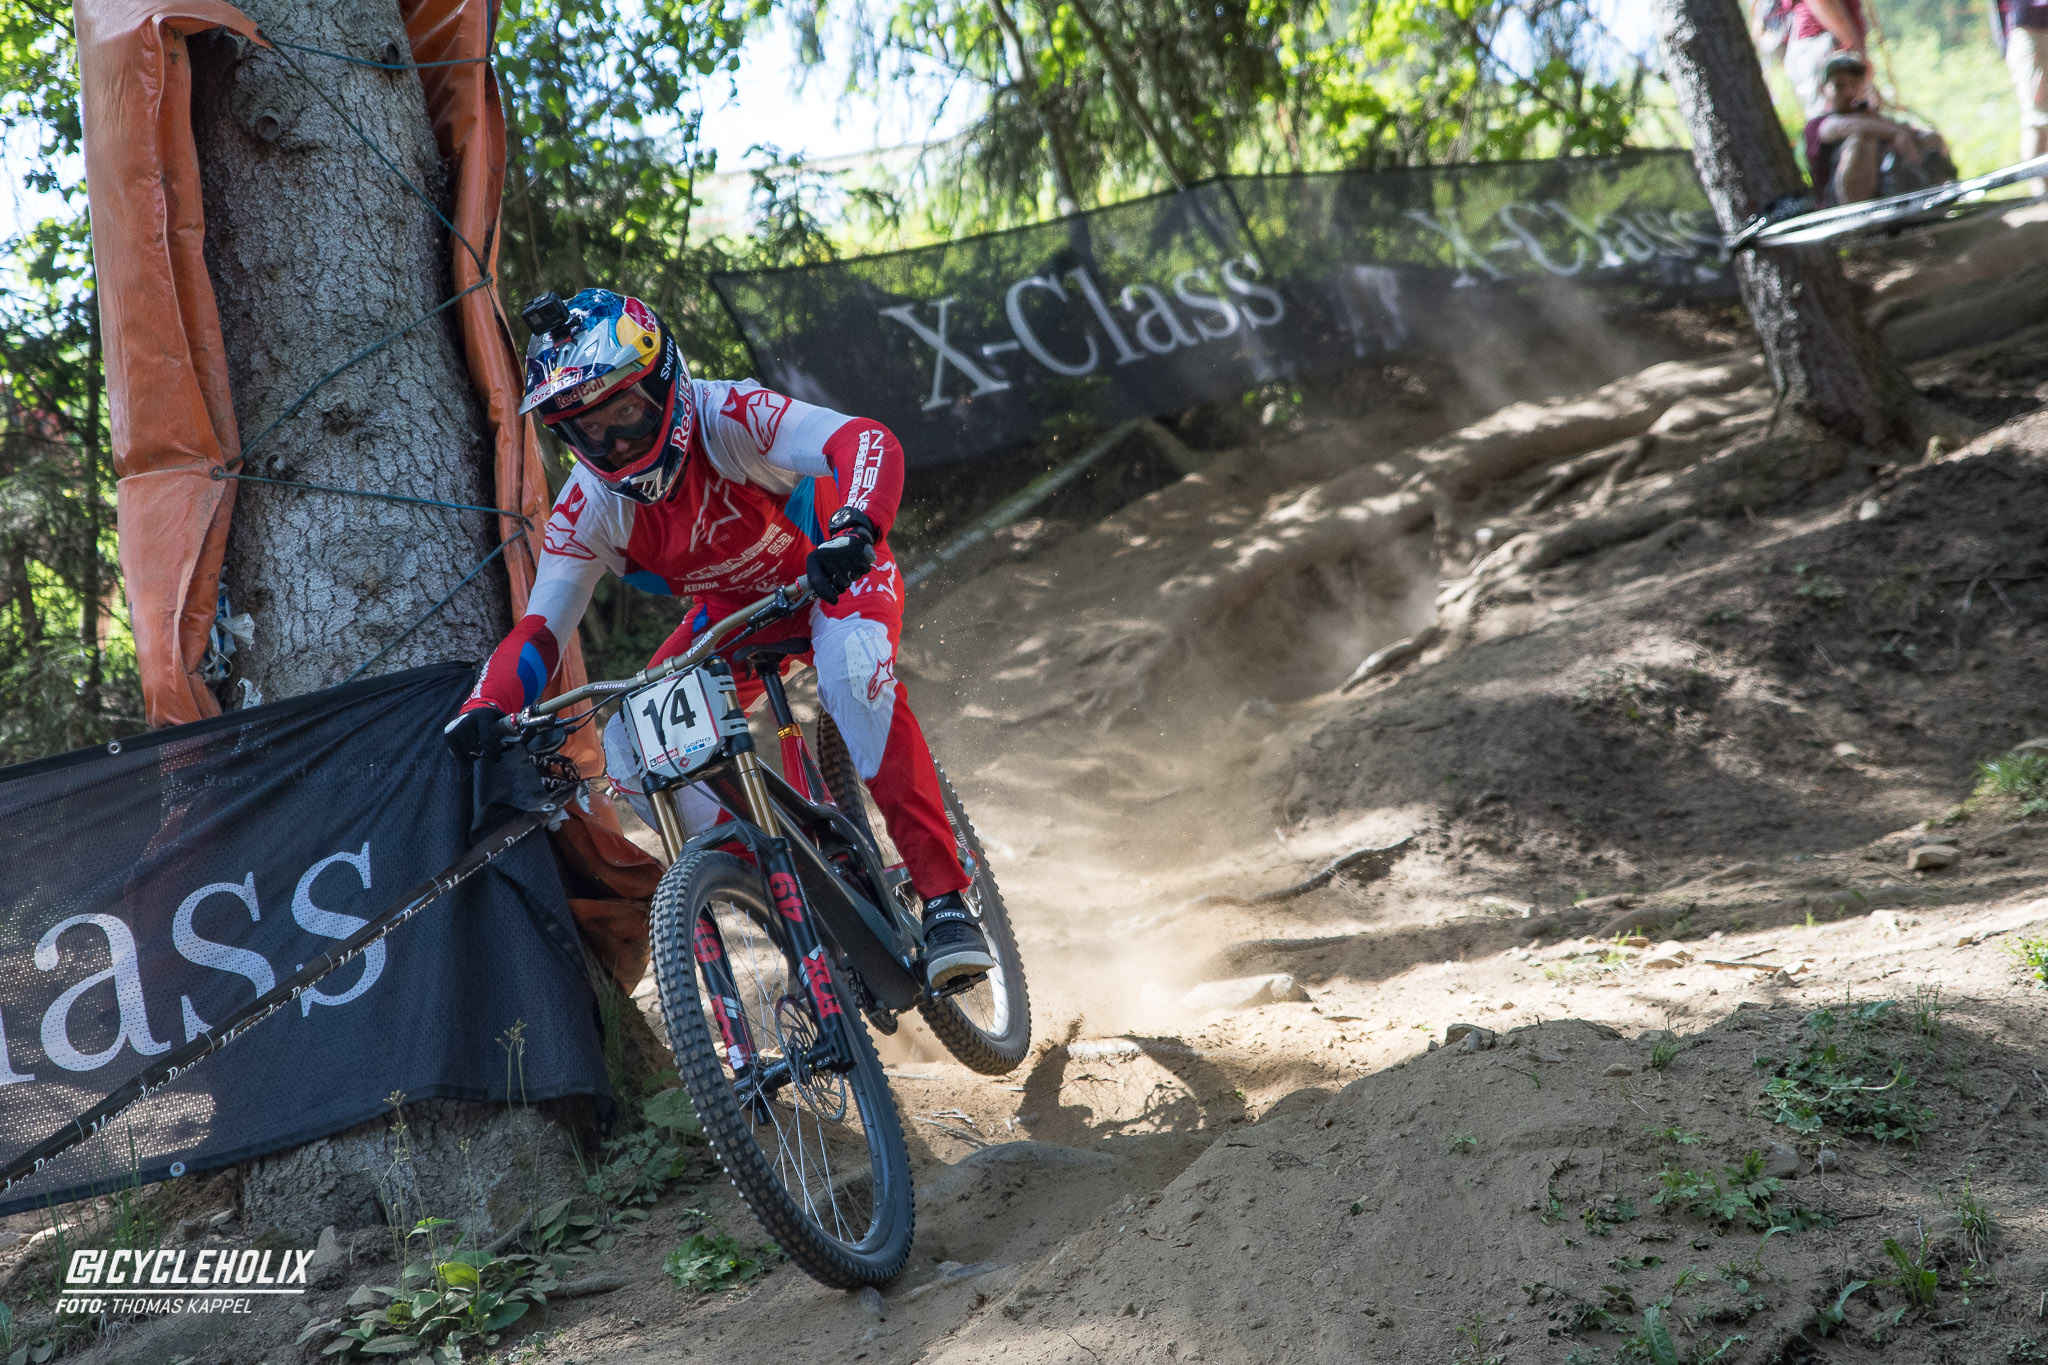 2019 Downhill Worldcup Leogang Finale Action 7